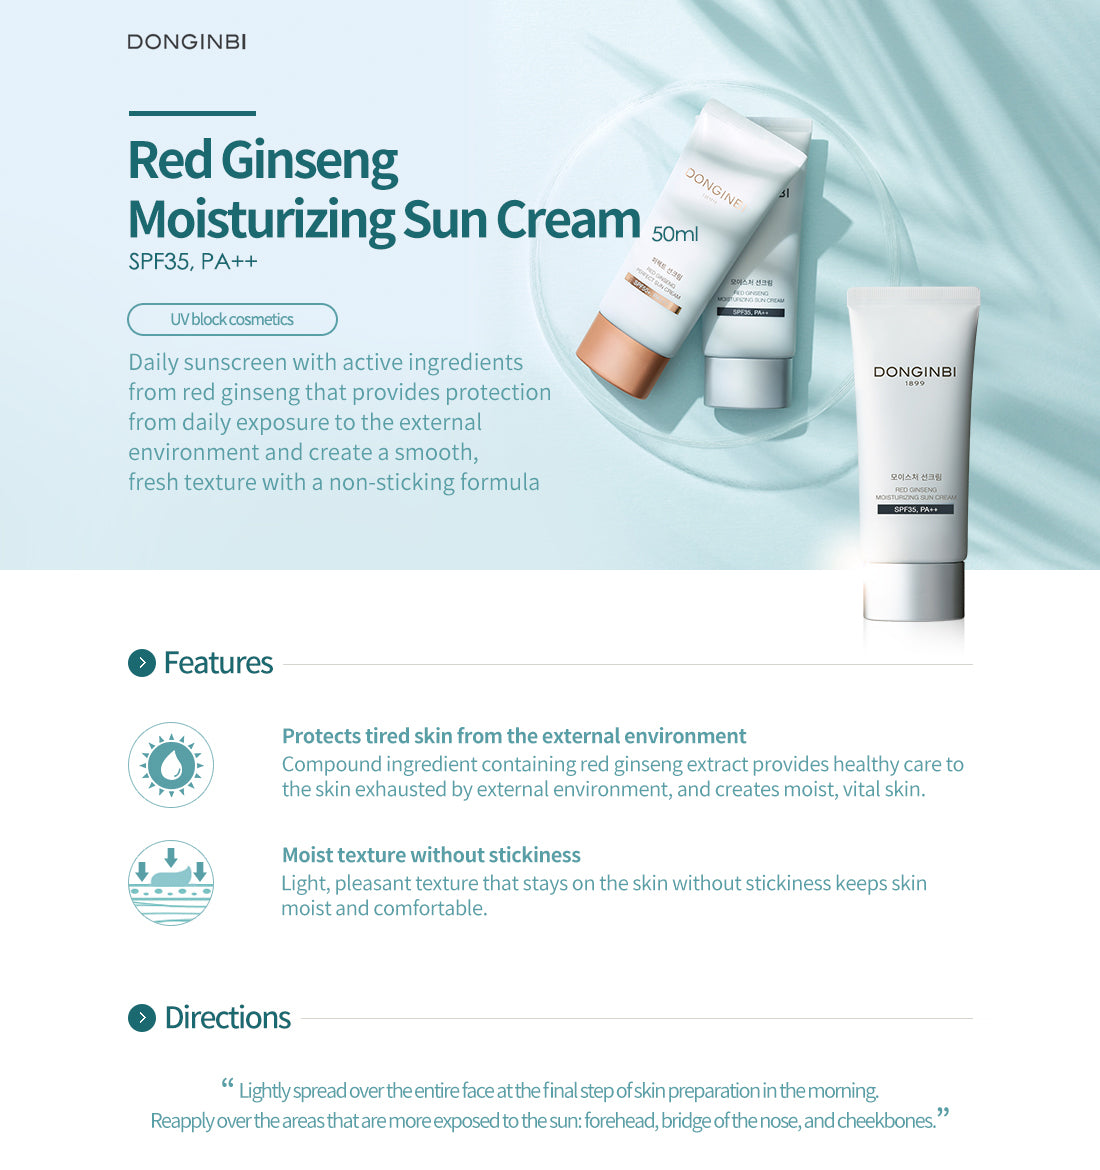 red_ginseng_moisturizing_sun_cream-1.jpg